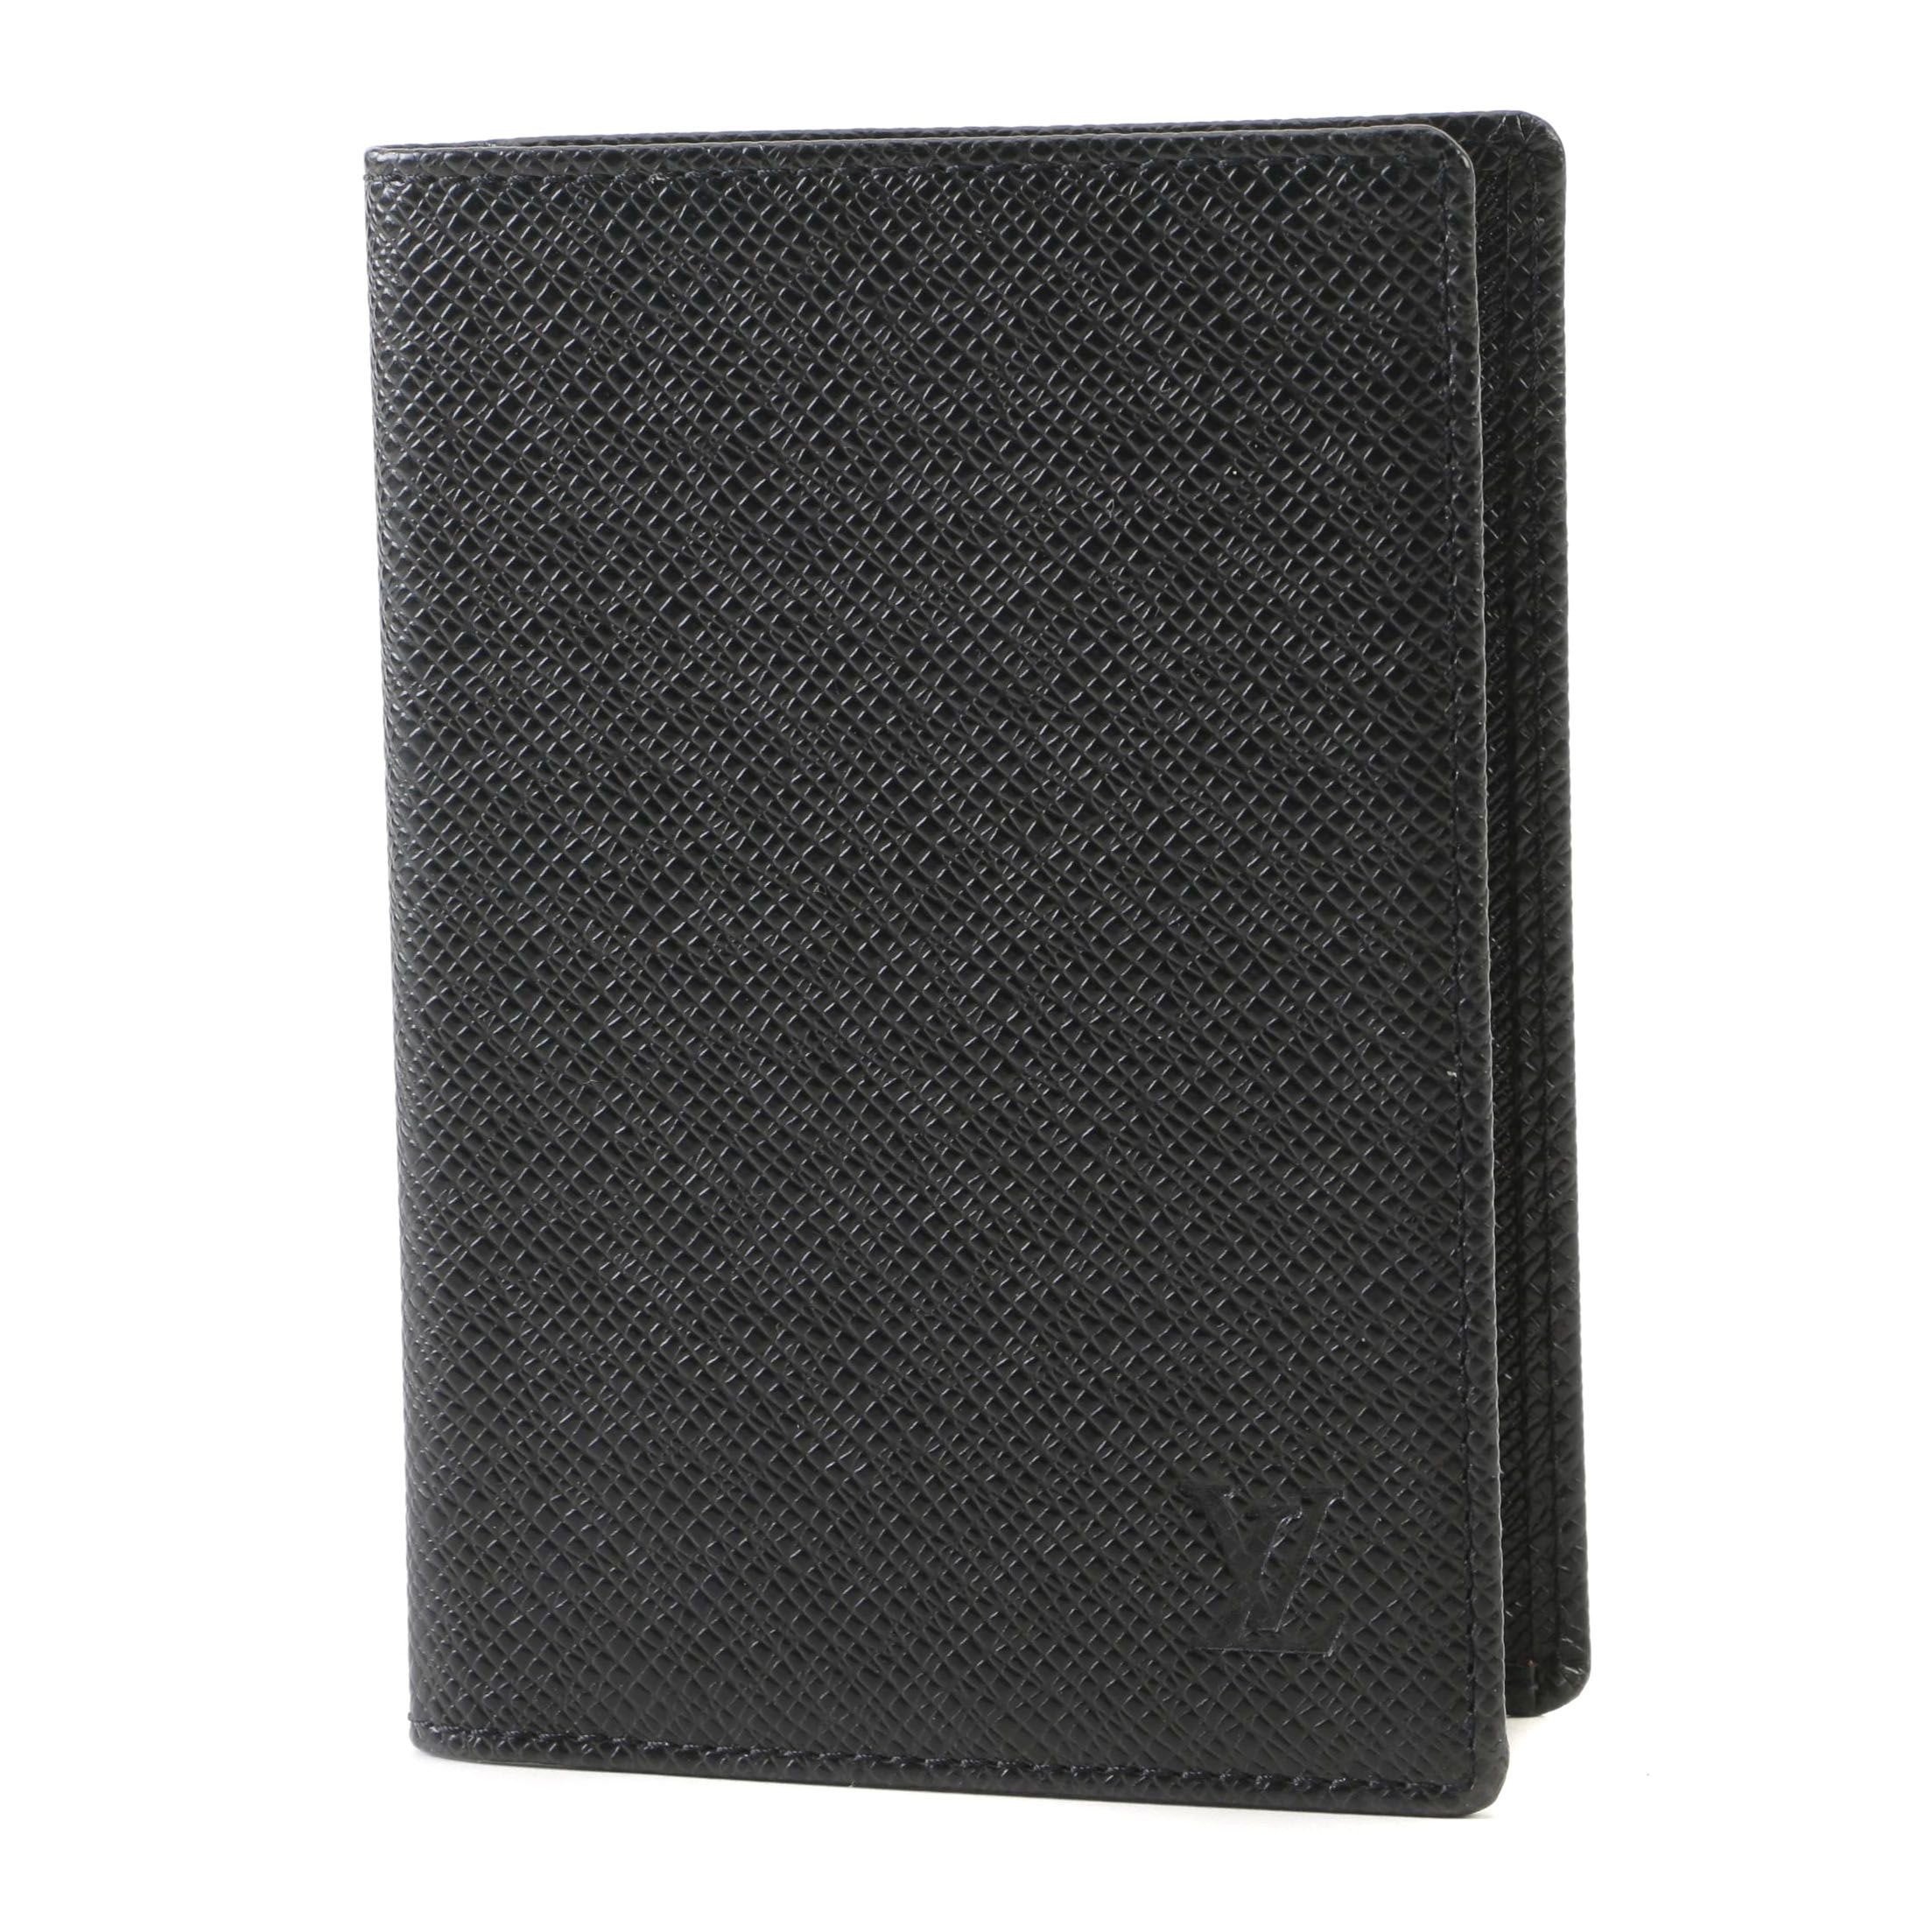 Louis Vuitton Black Taiga Leather Notepad Cover, Made in France, 2000